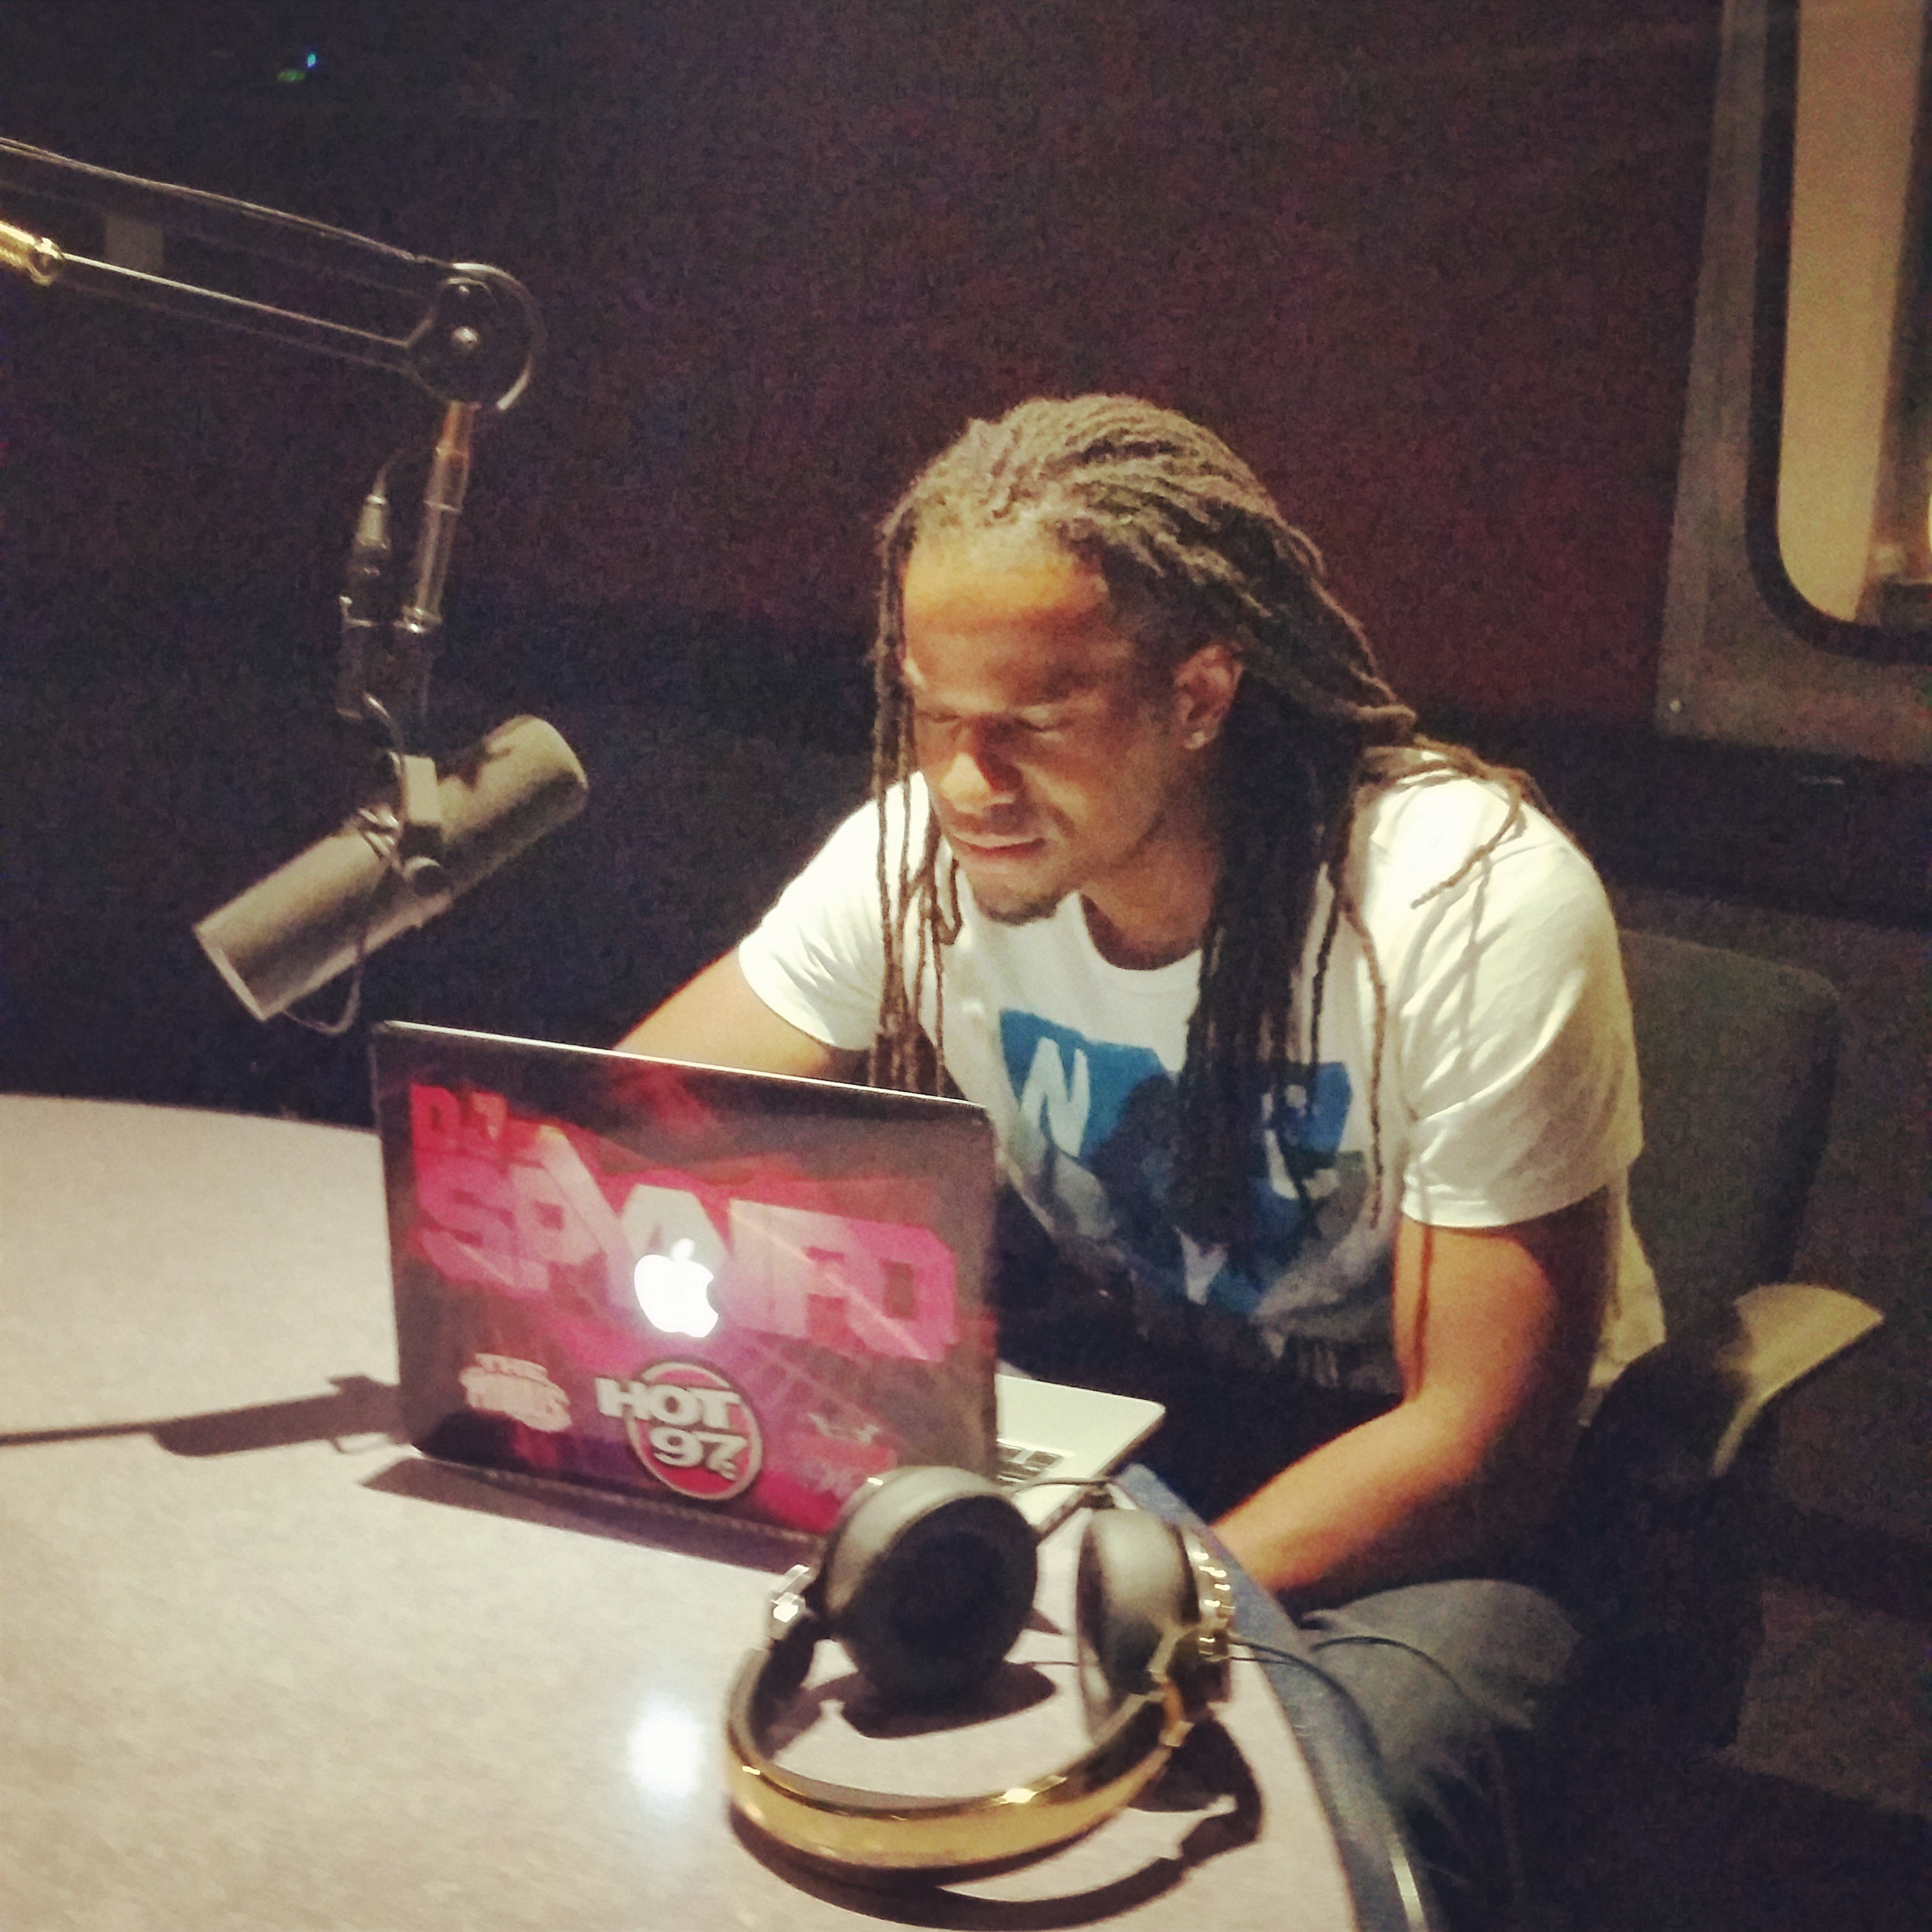 Live on Hot 97 July 27th 2014